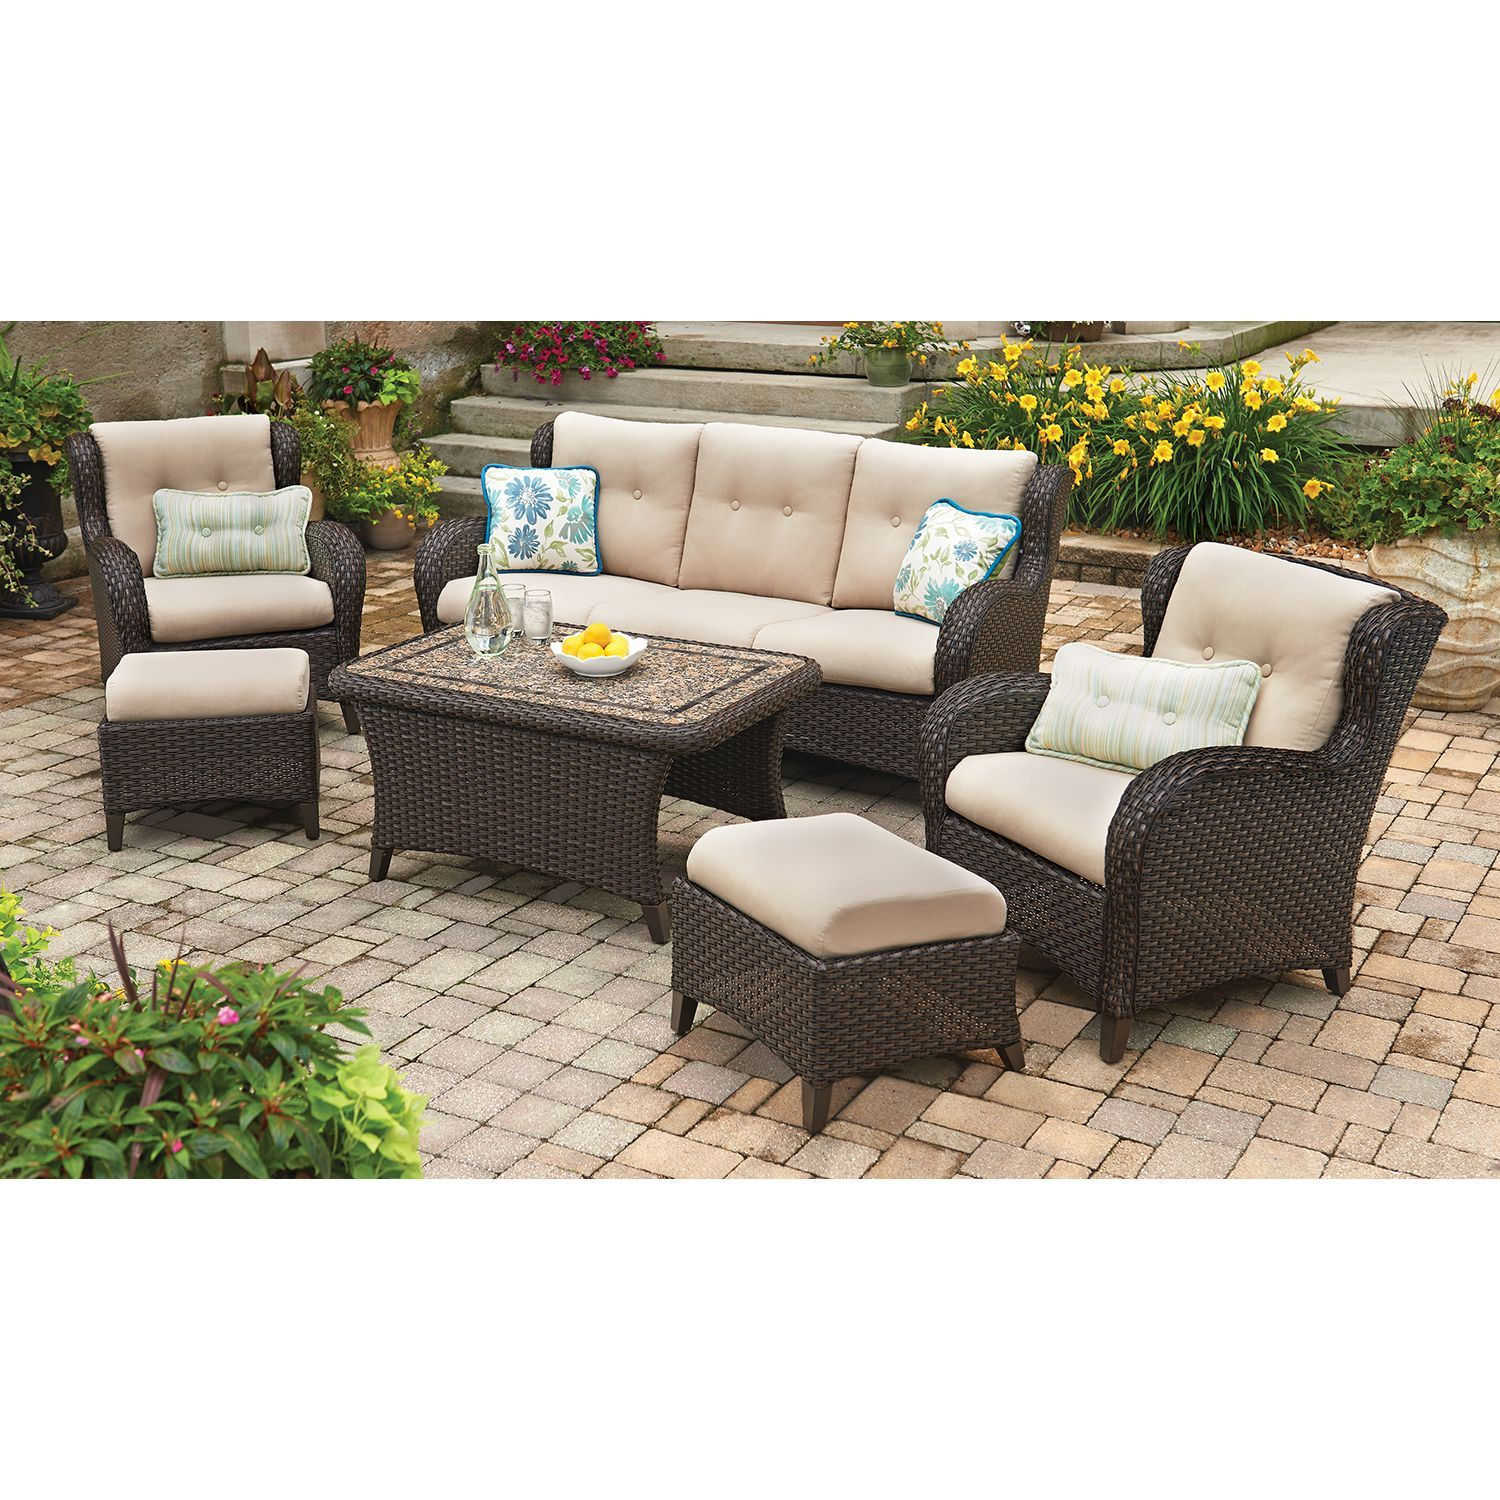 Agio Heritage Patio Furniture Home Design Ideas and